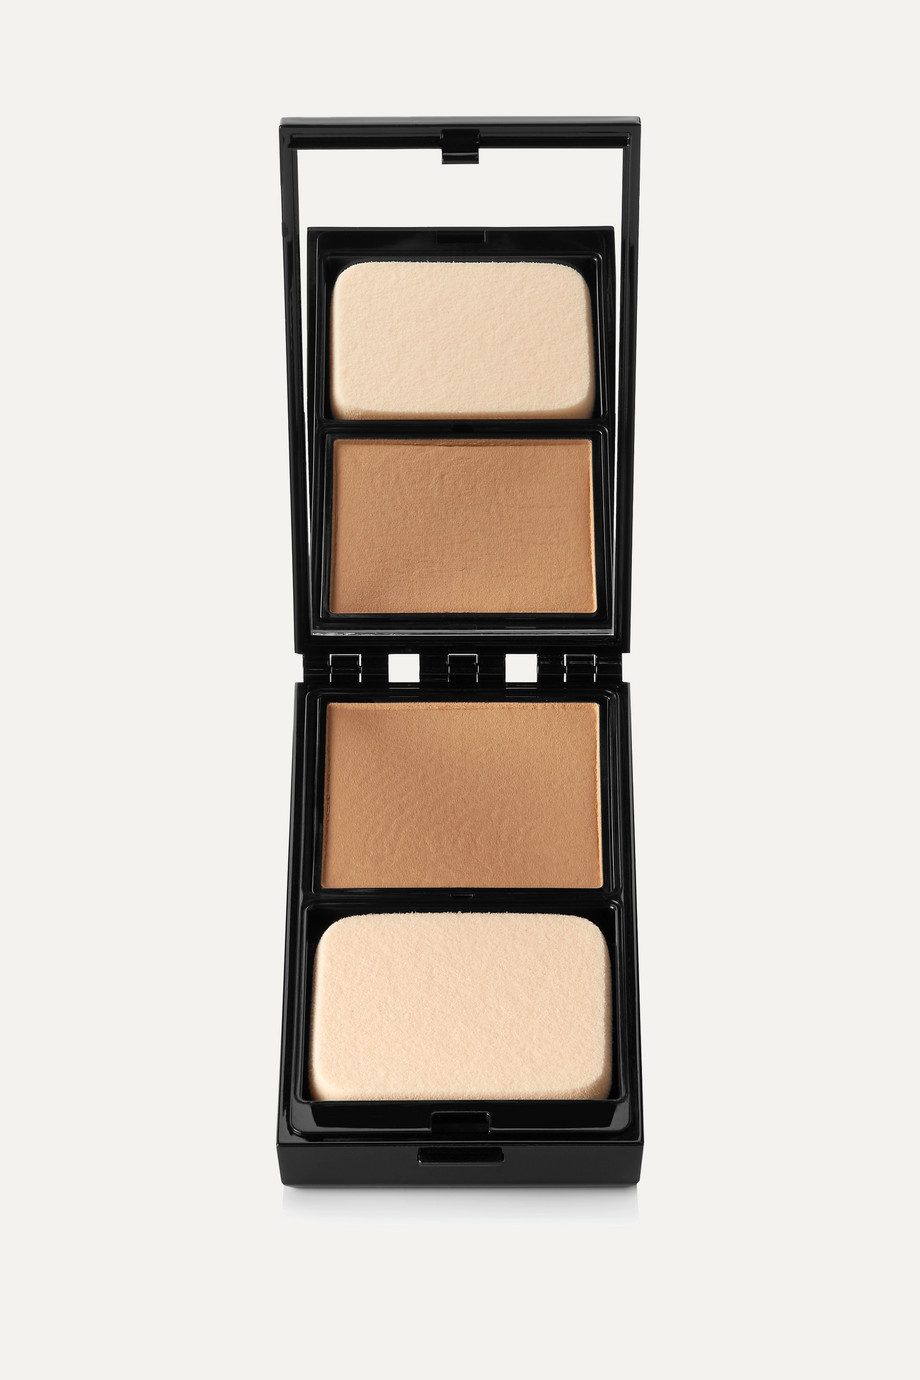 Serge Lutens Tient Si Fin Compact Foundation – 060 – Foundation